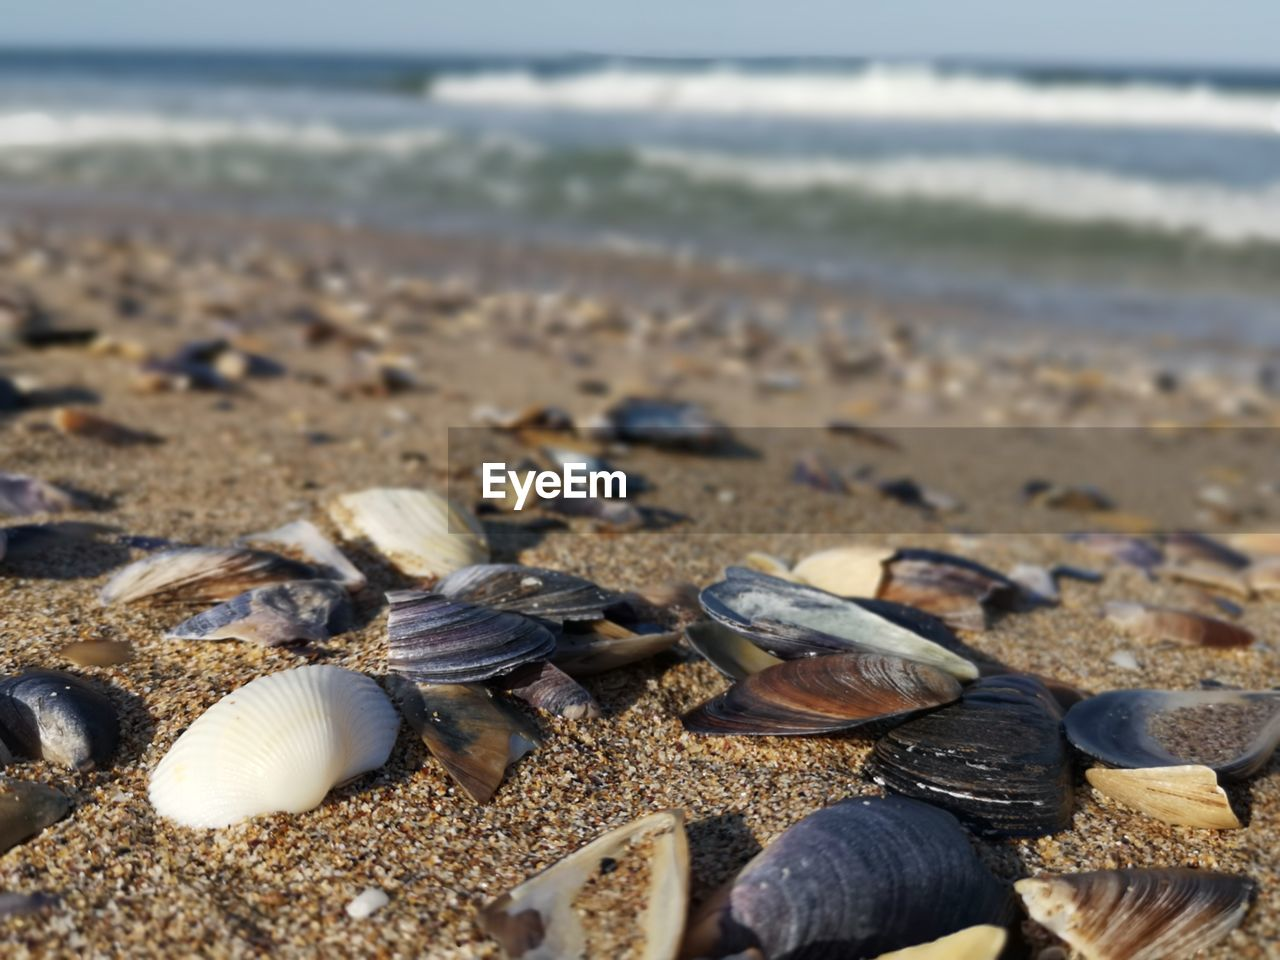 beach, land, sea, shell, sand, water, animal shell, nature, day, no people, beauty in nature, seashell, close-up, animal wildlife, tranquility, focus on foreground, animal, clam, sunlight, outdoors, surface level, marine